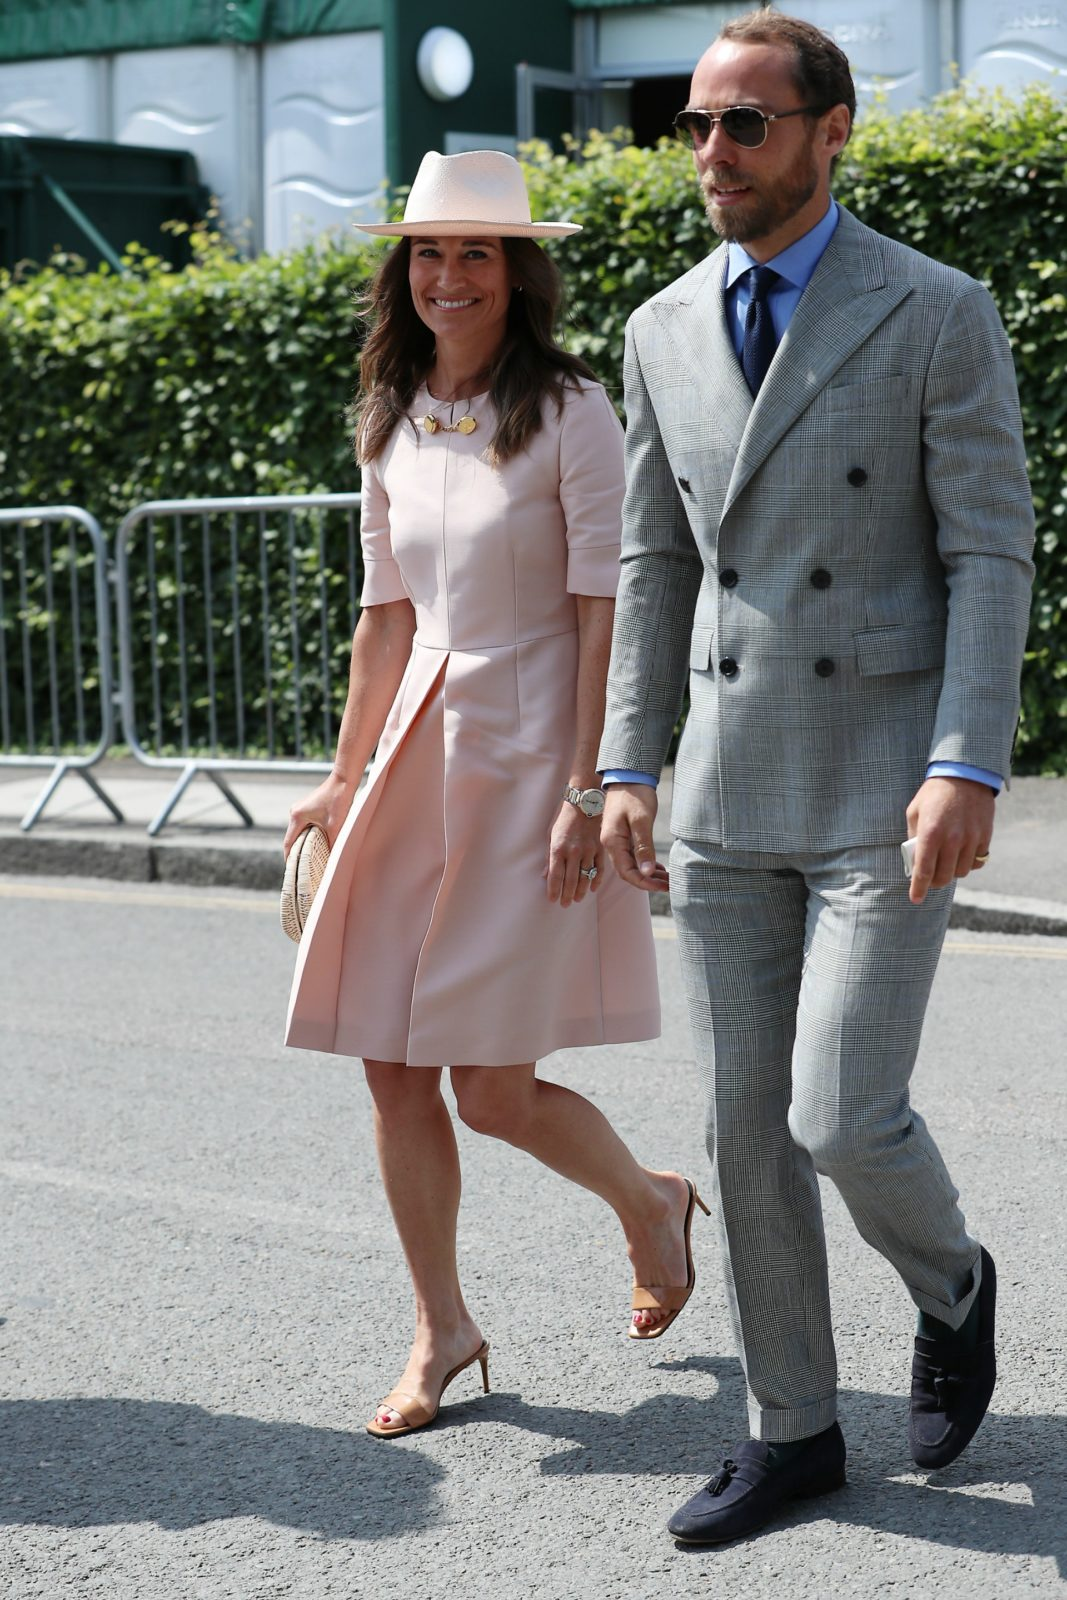 Pippa and James proved they were stylish by stepping out in trendy outfits for Wimbledon.